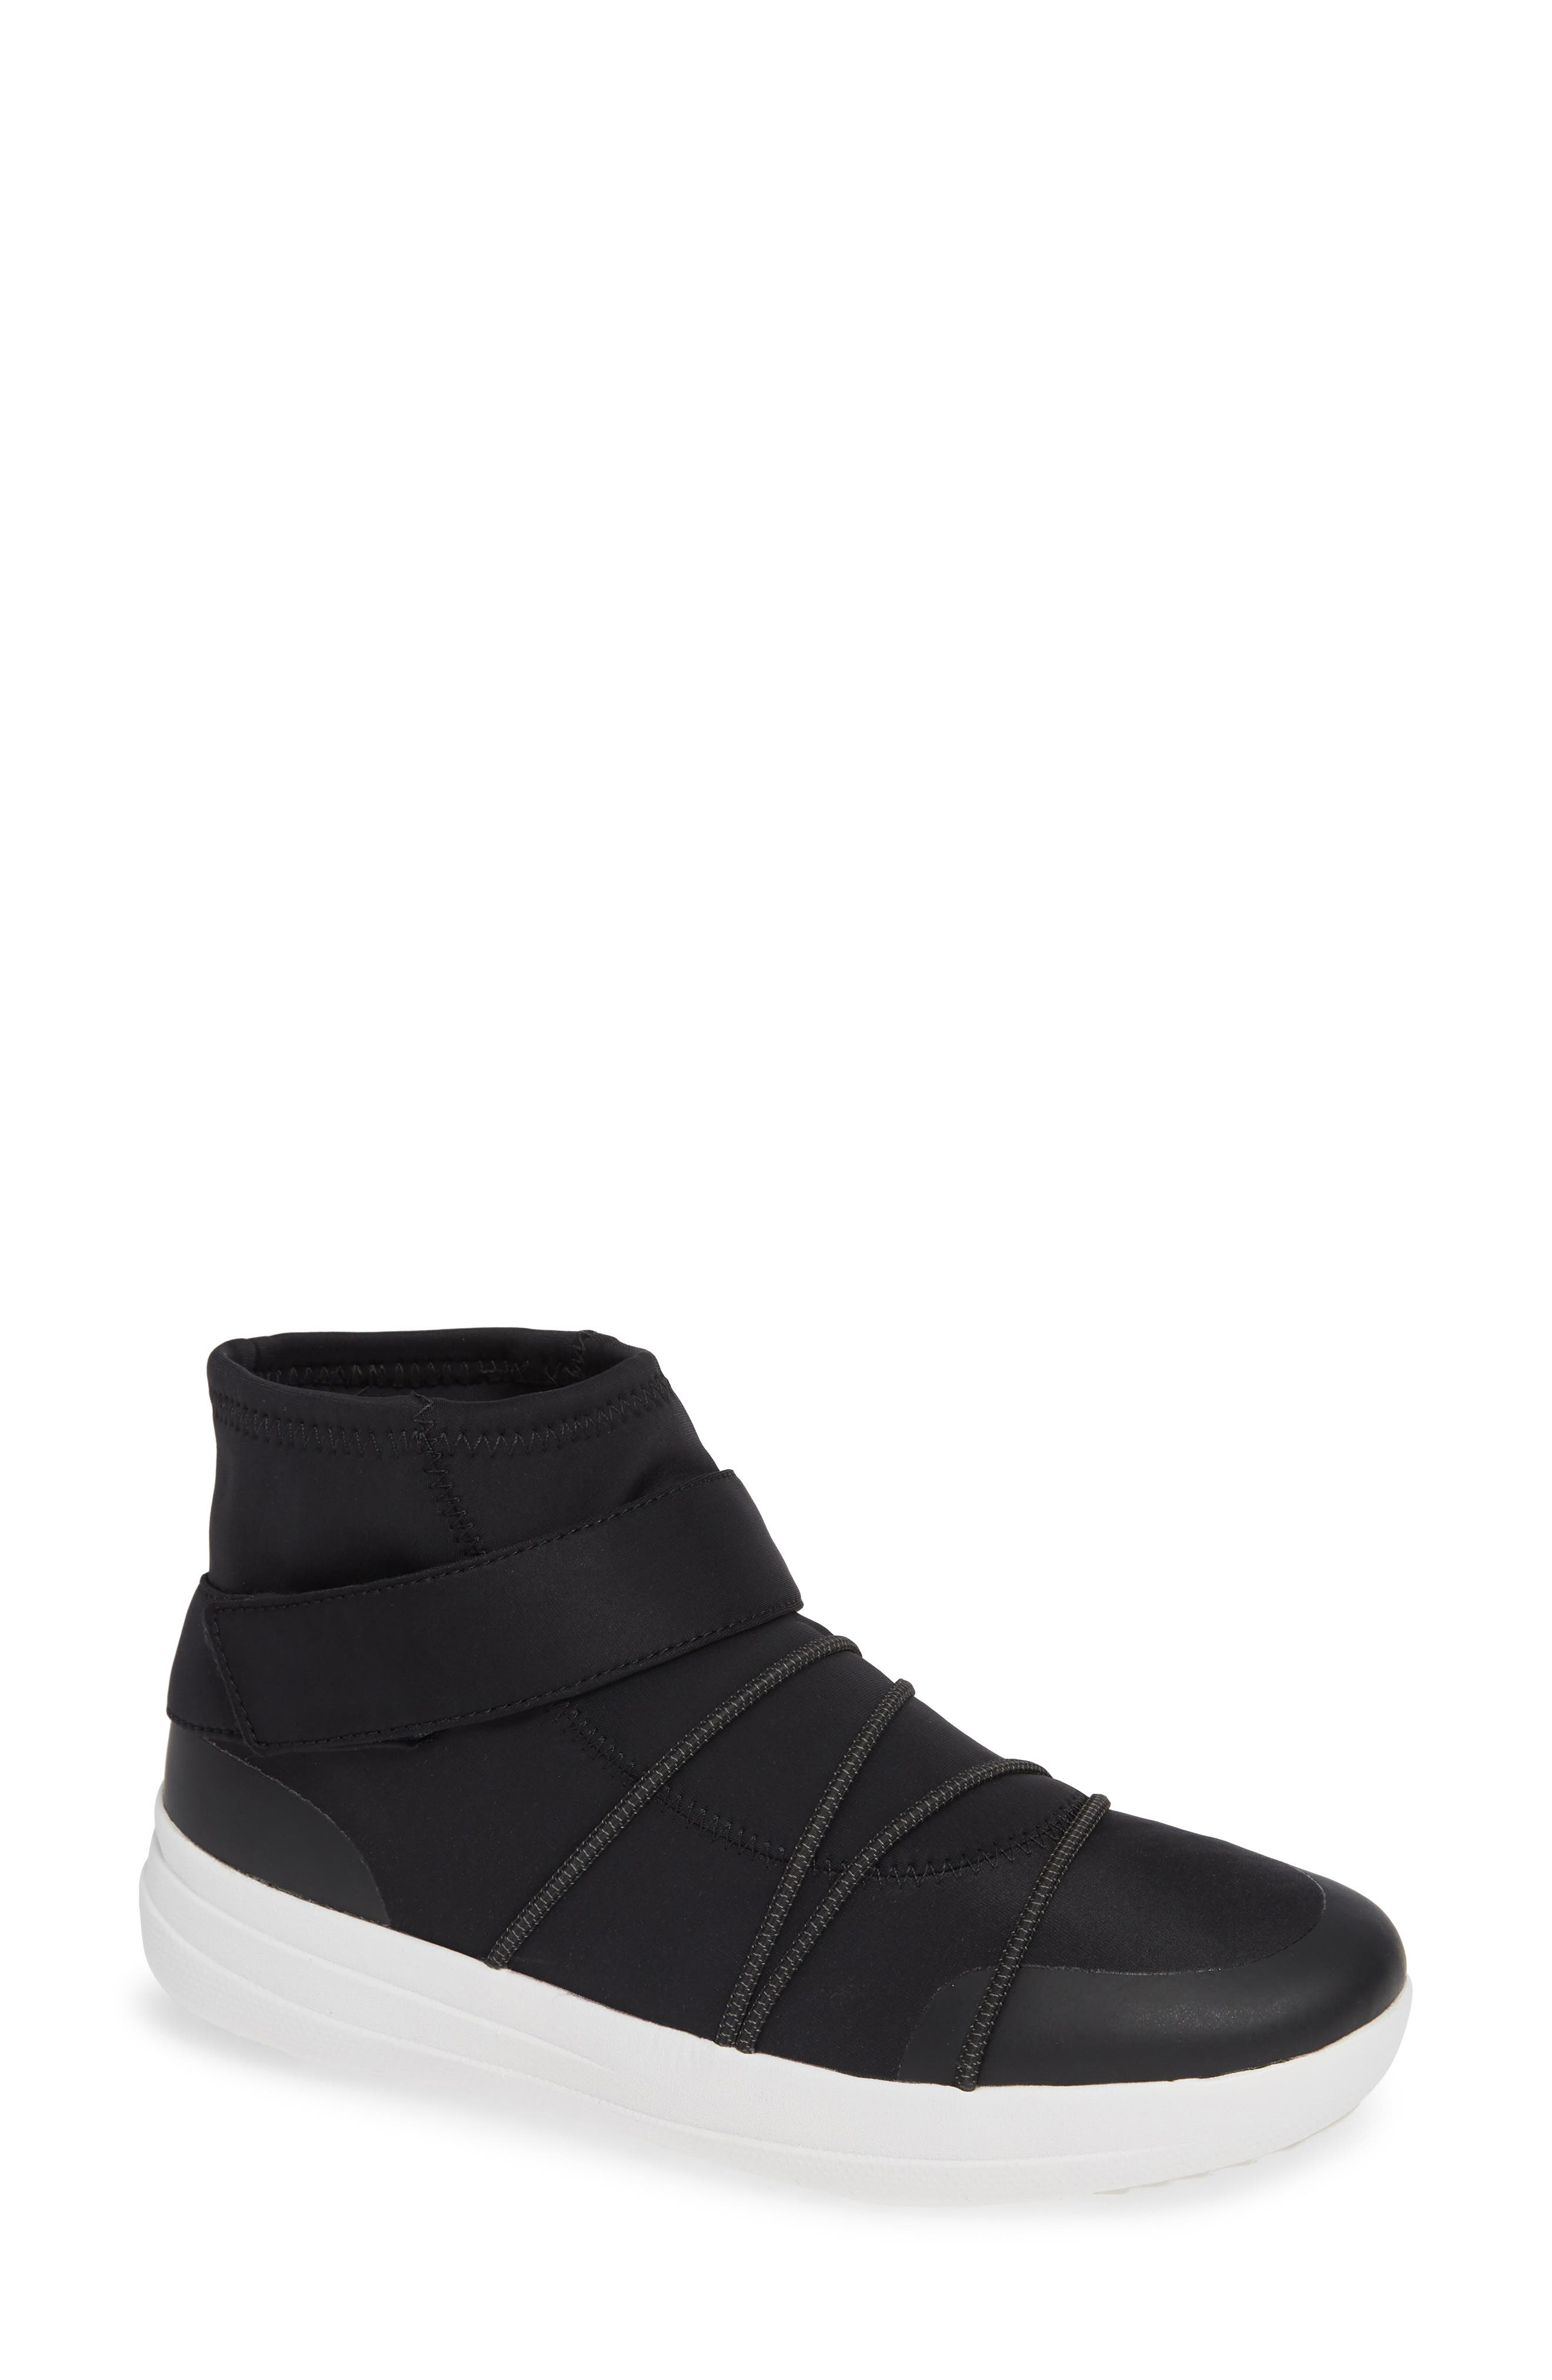 Neoflex High Top Sneaker,                         Main,                         color, BLACK FABRIC